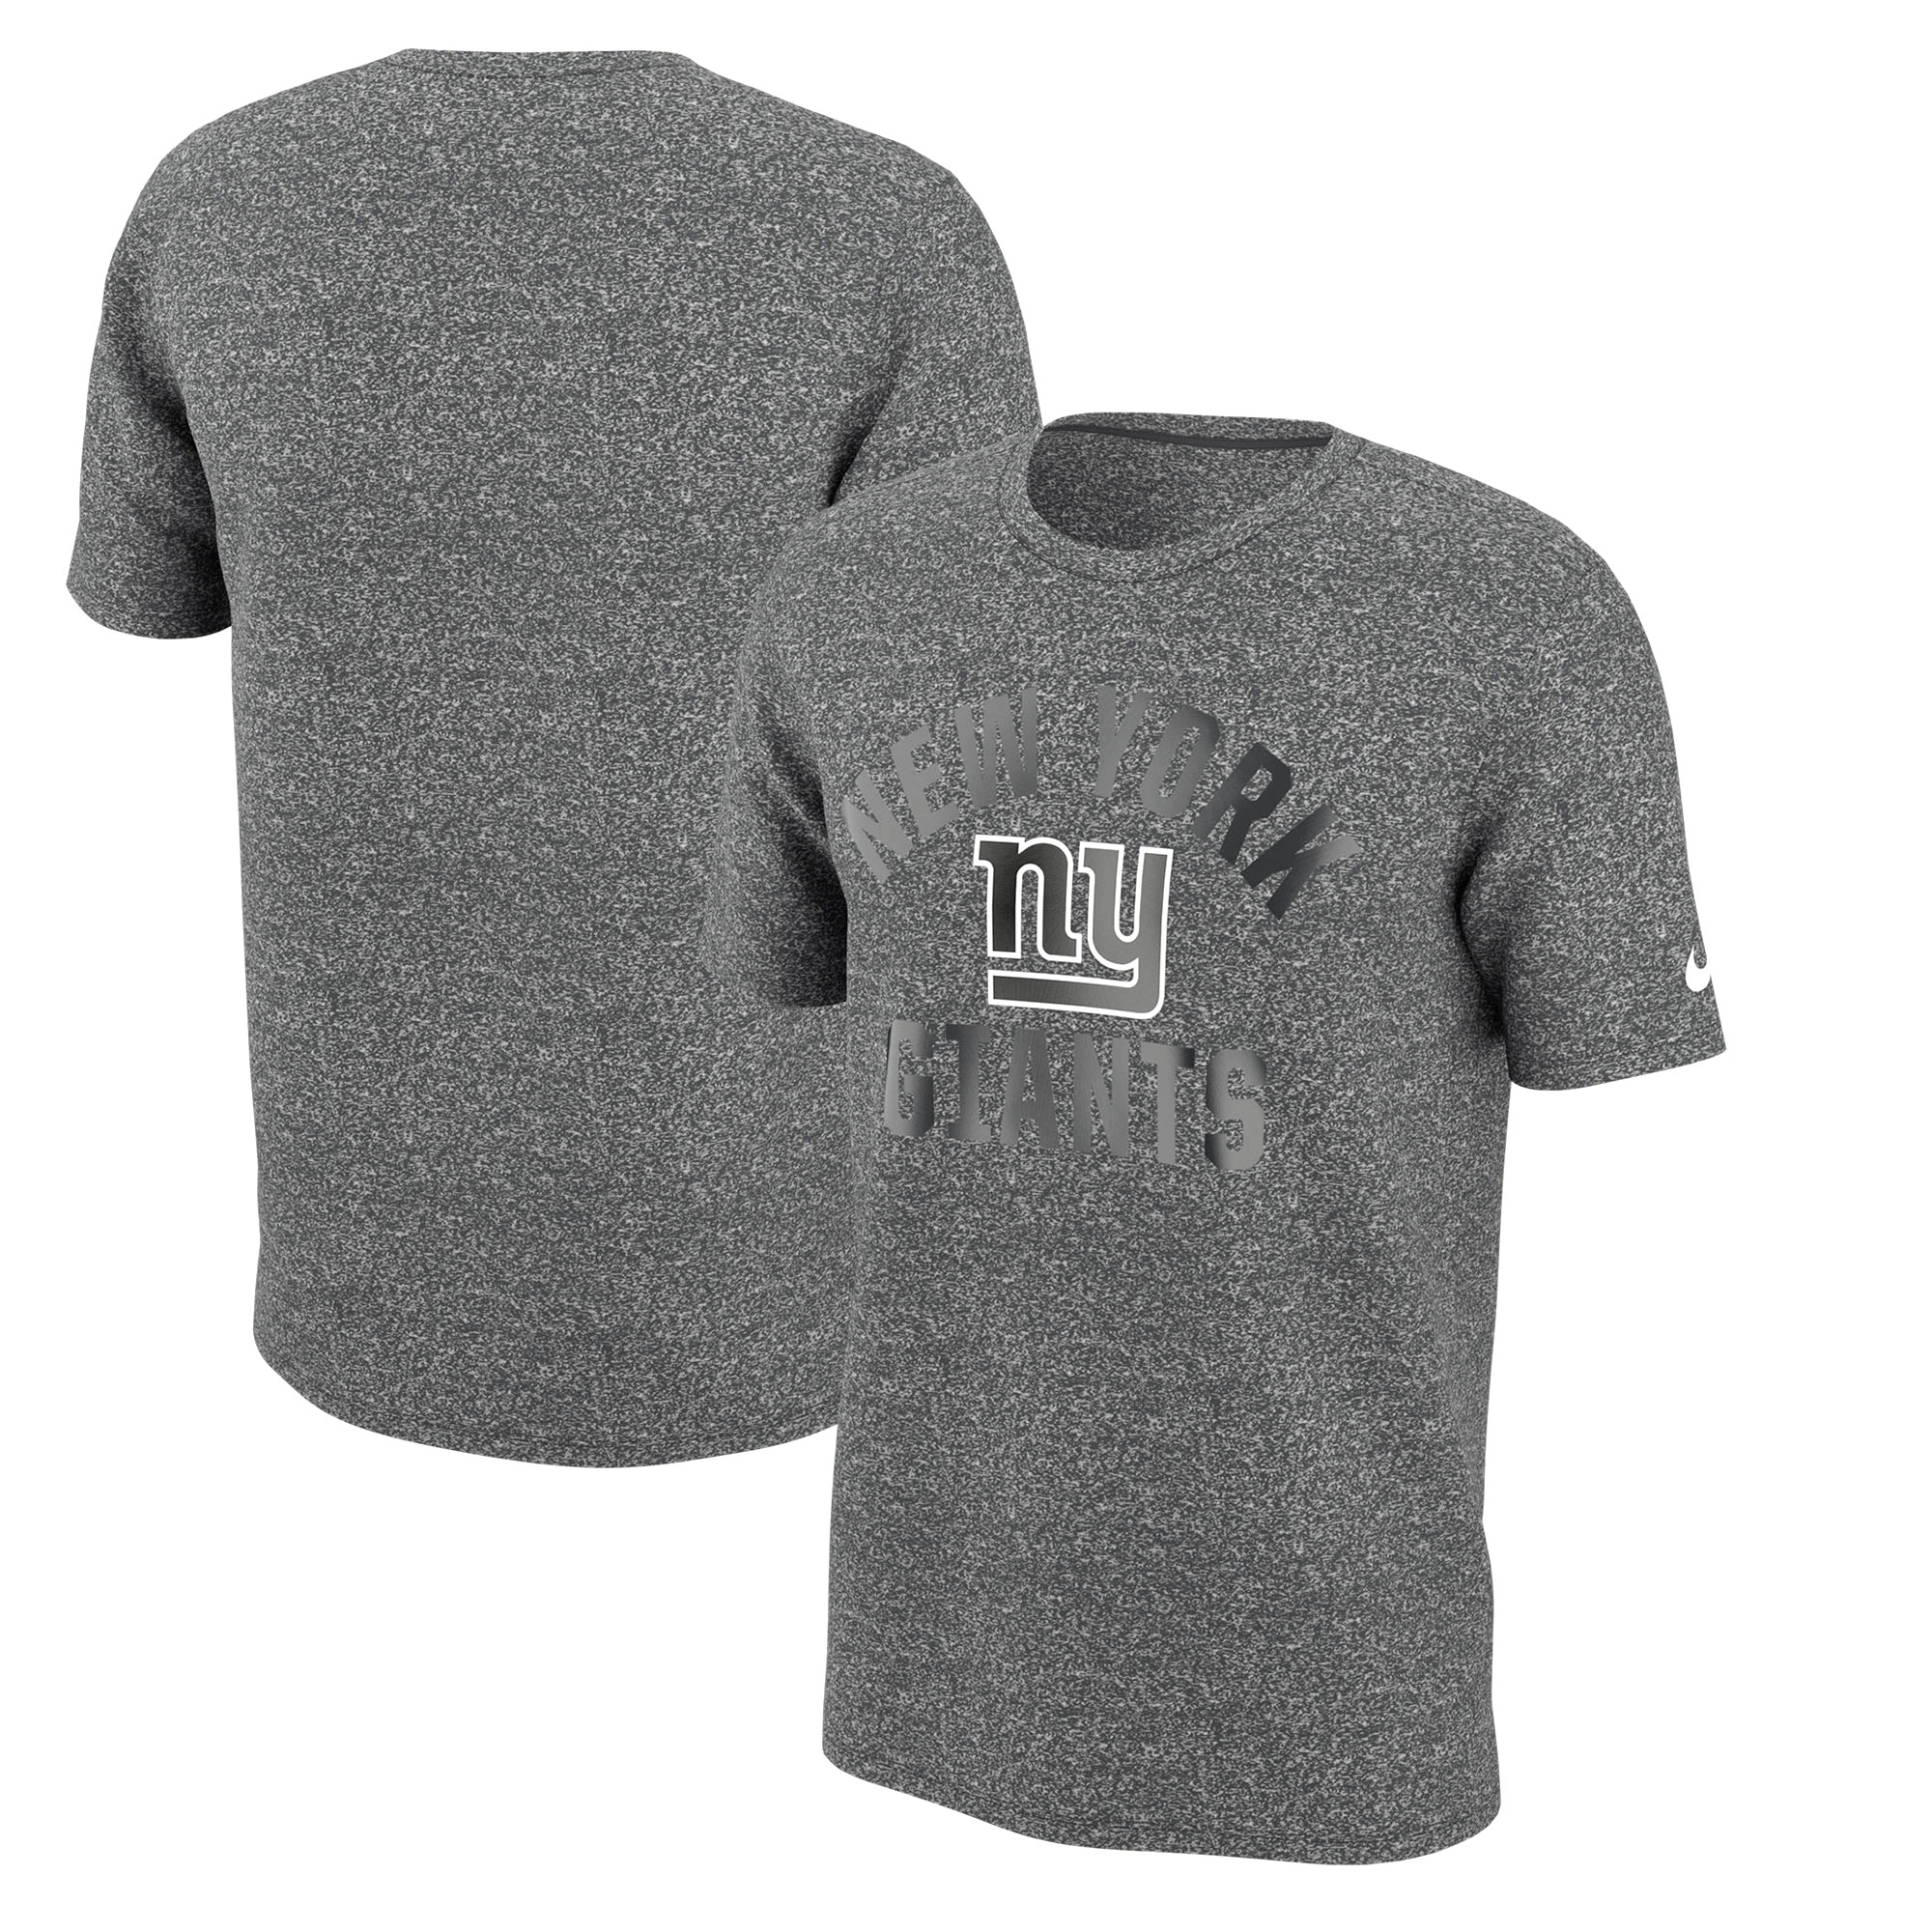 New York Giants Nike Marled Gym Reflective Arch T-Shirt - Heathered Charcoal